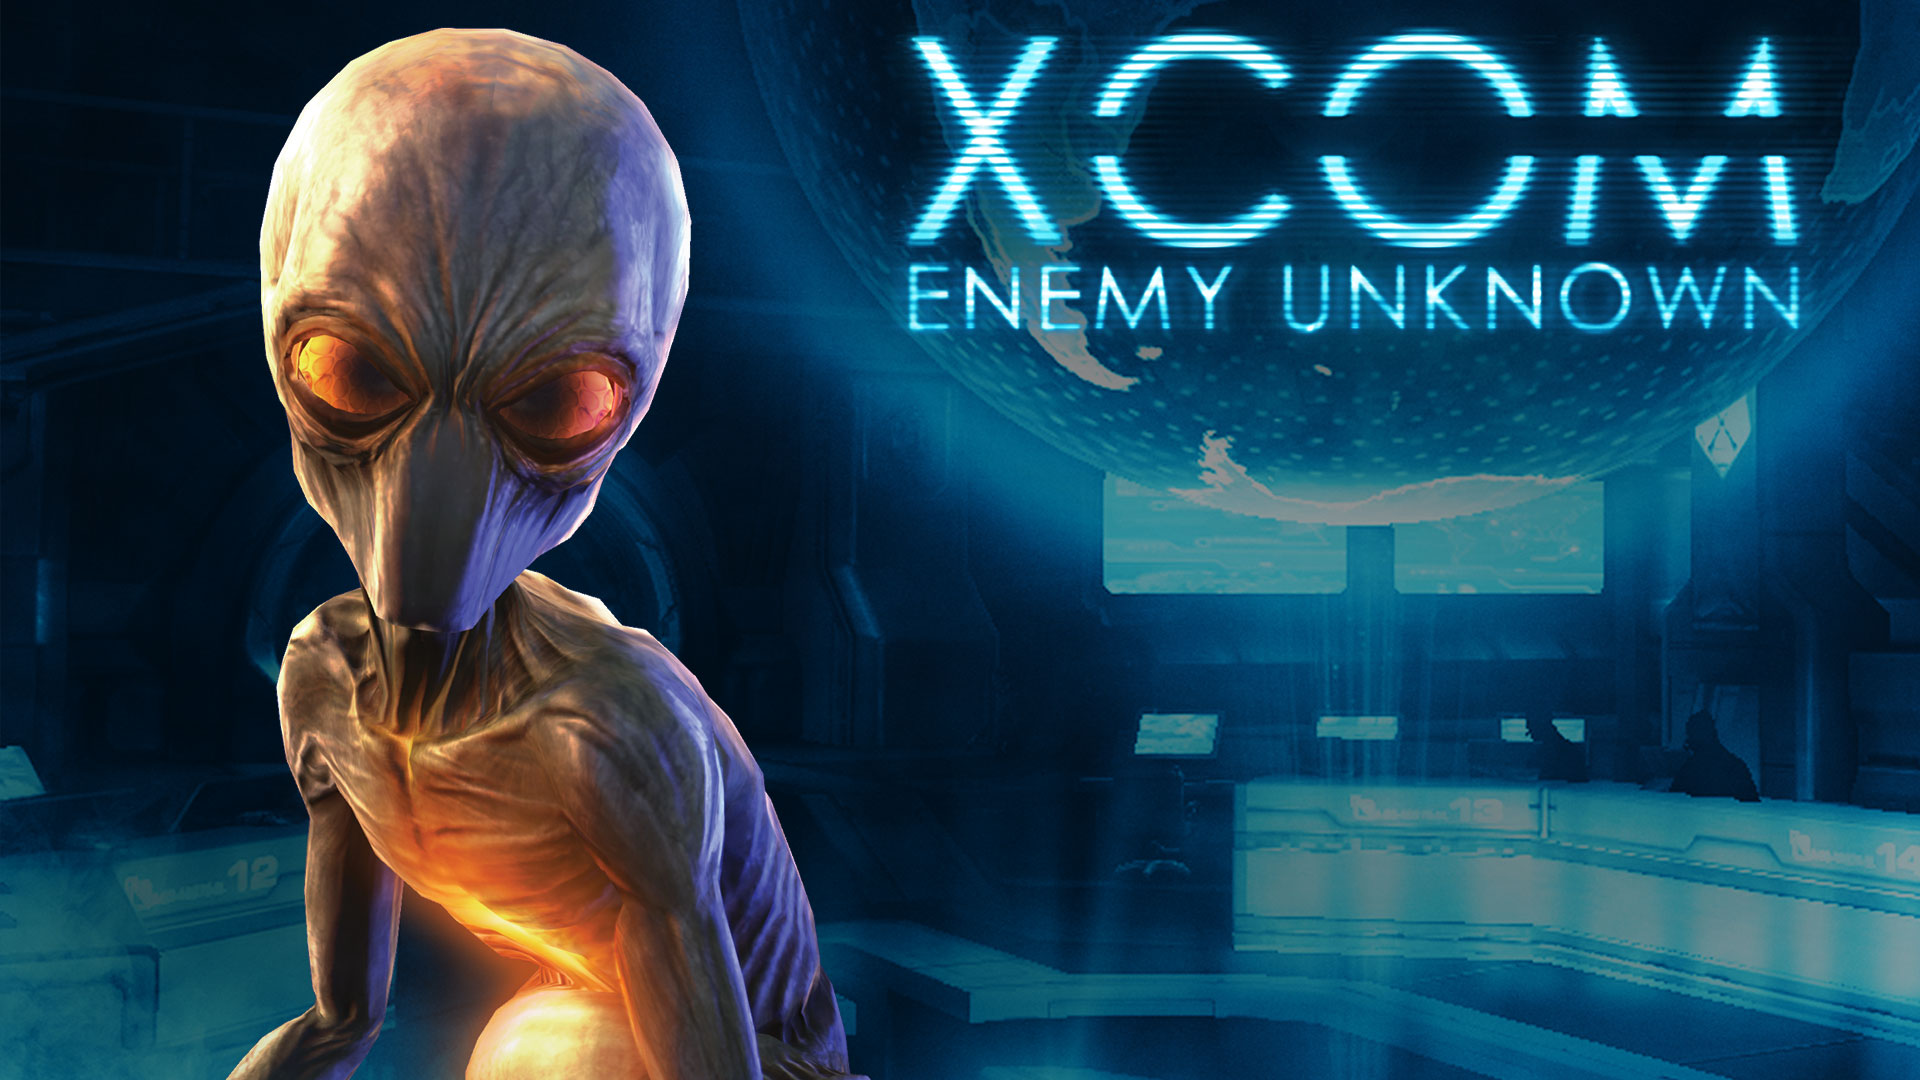 XCOM Enemy Unknown Plus (PS Vita) Review | The Reformed Gamers  XCOM Enemy Unkn...